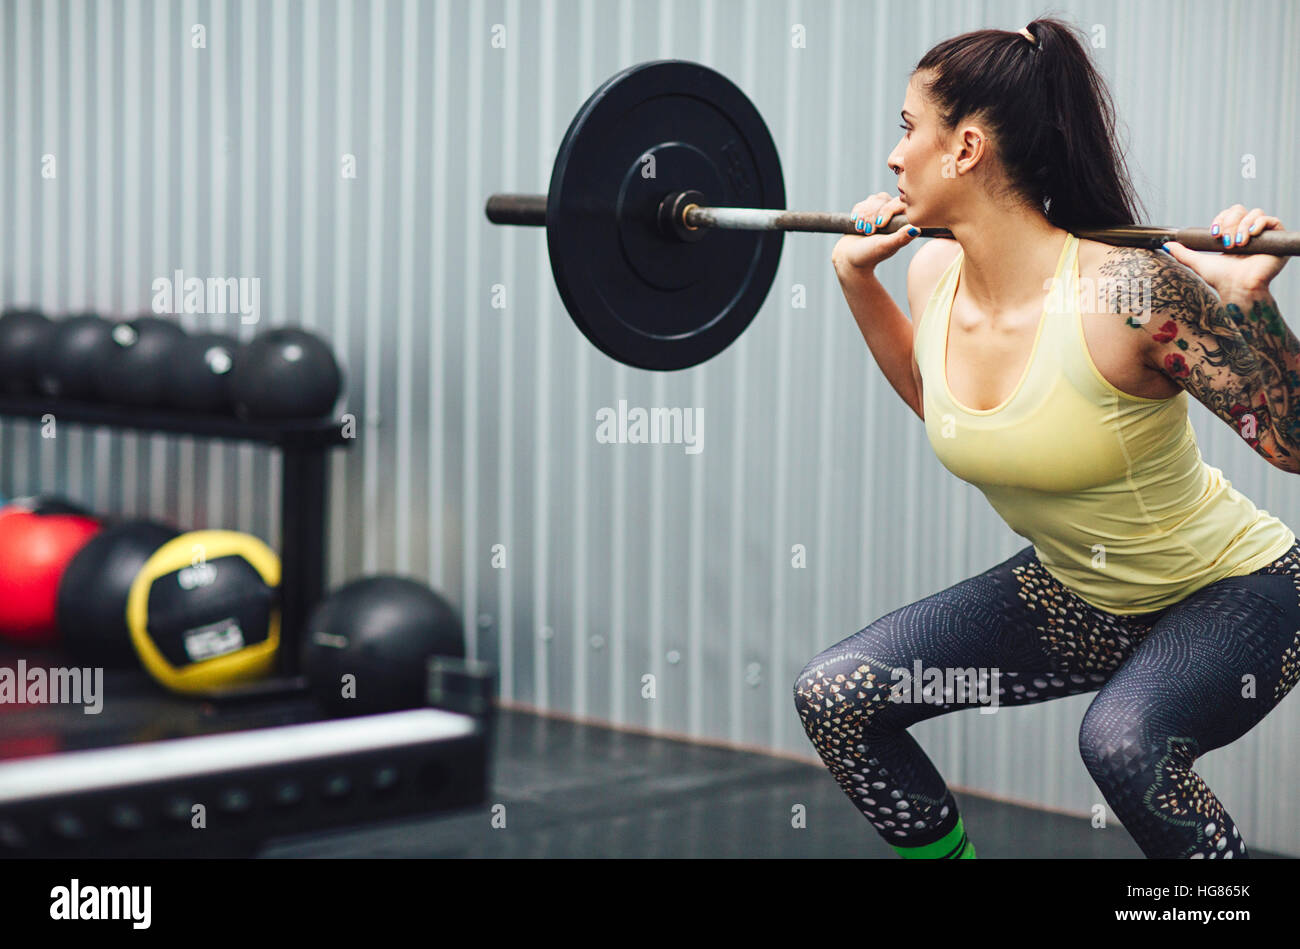 Woman weightlifting with barbell in gym - Stock Image